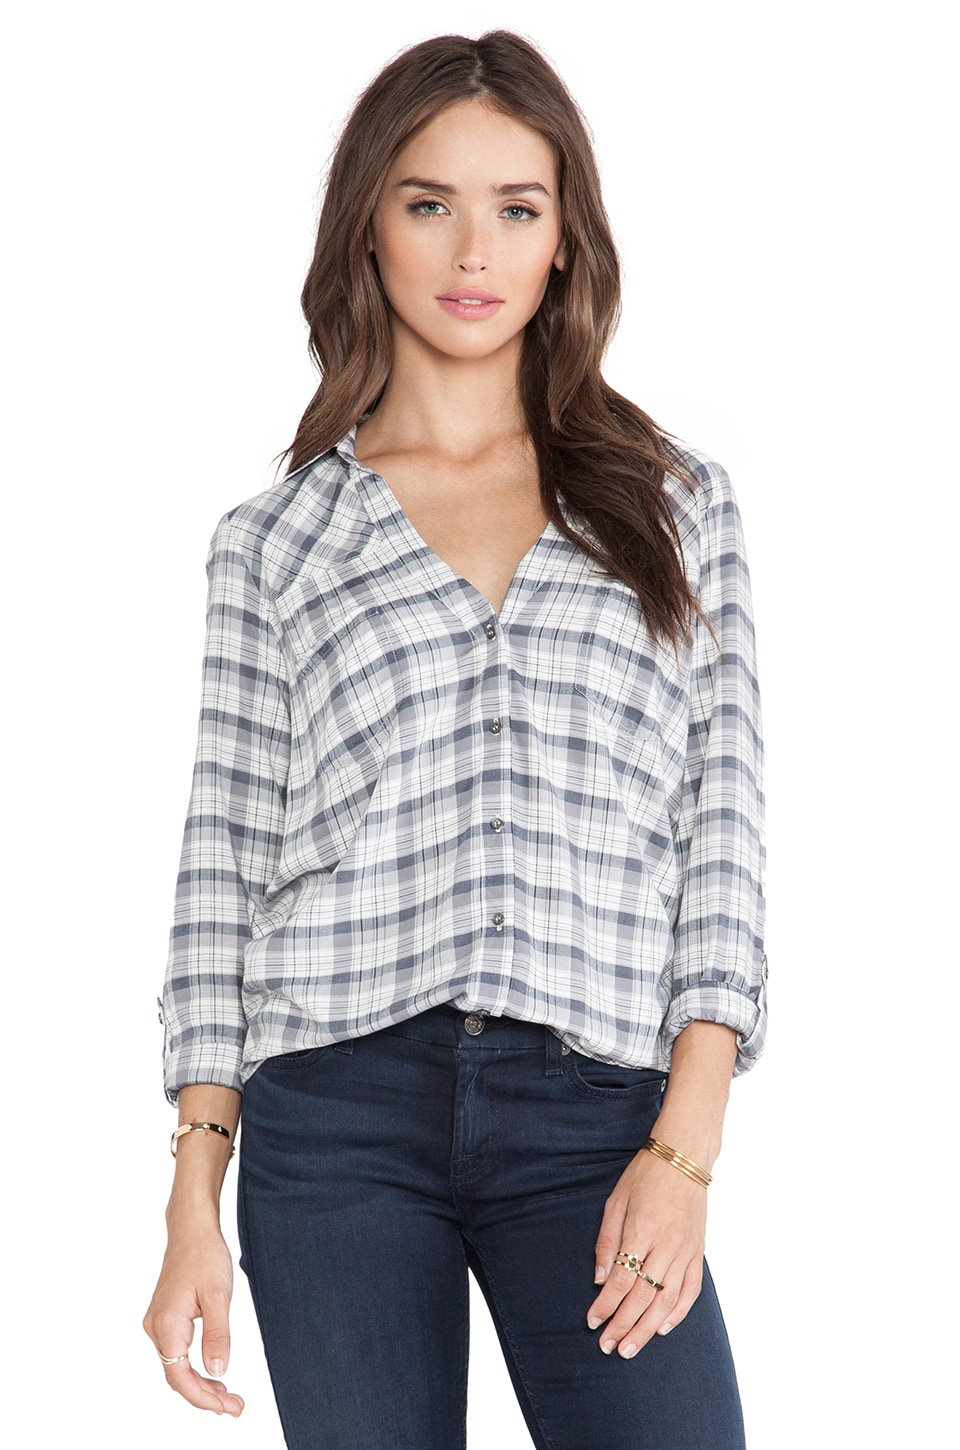 Soft Joie Brady Top in Indigo & Grey